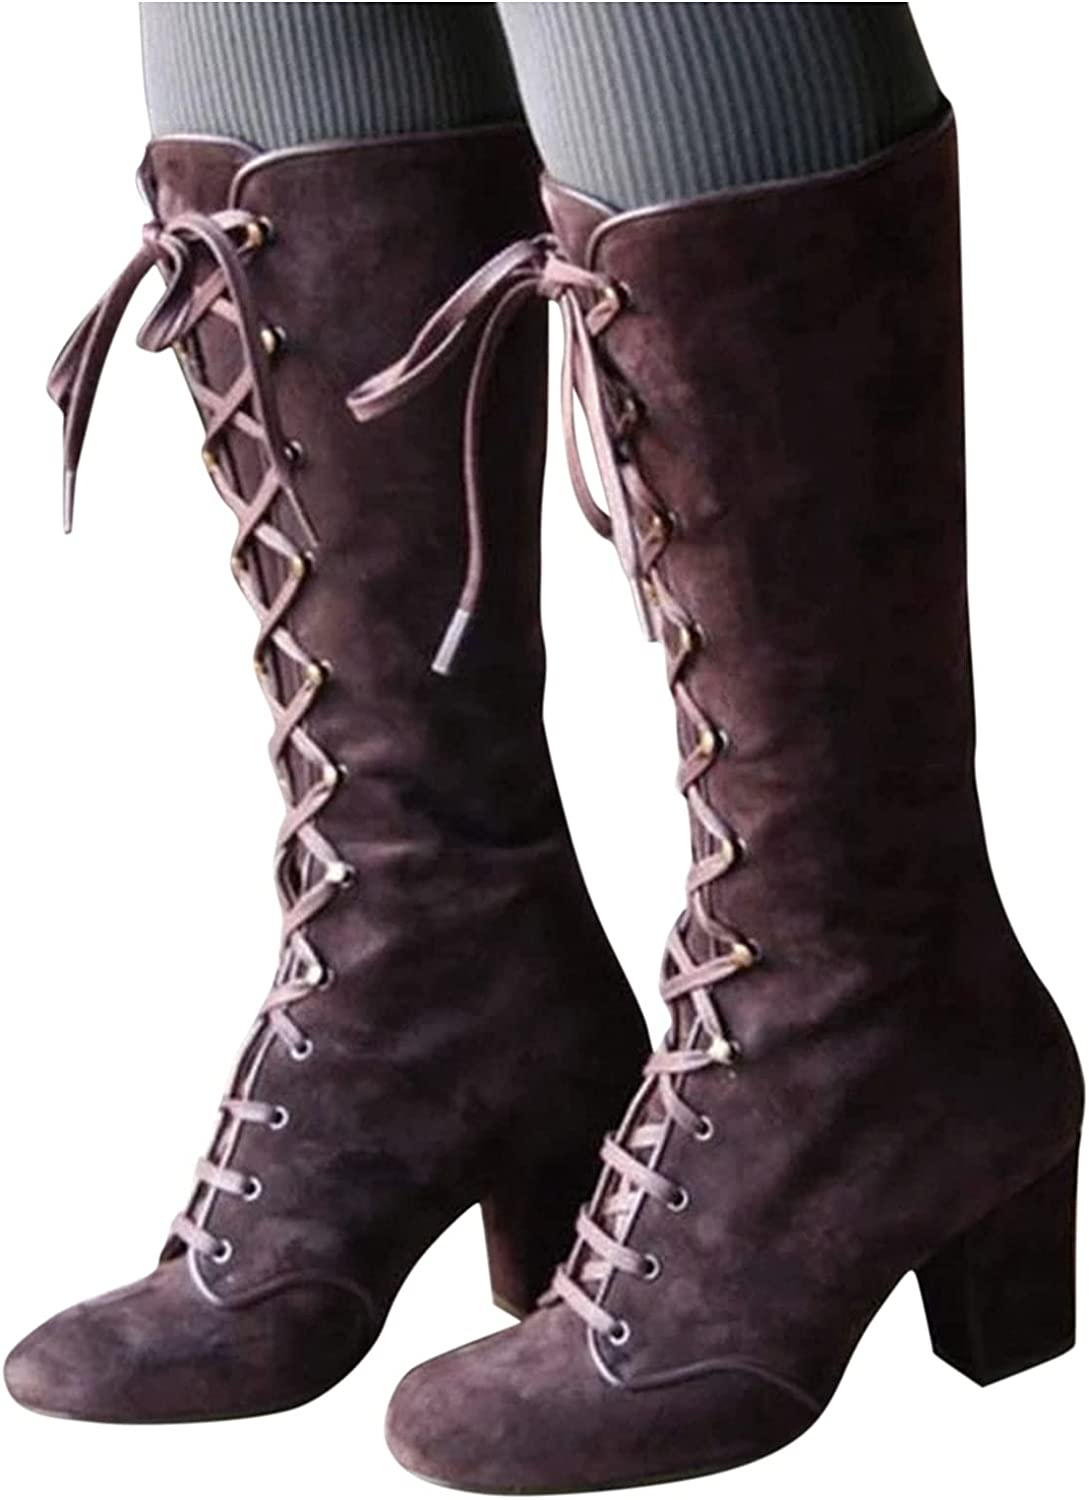 Boots for Women Low Heel Fashion Dressy Long Tube Combat Boots Vintage Lace Up Platform Boots